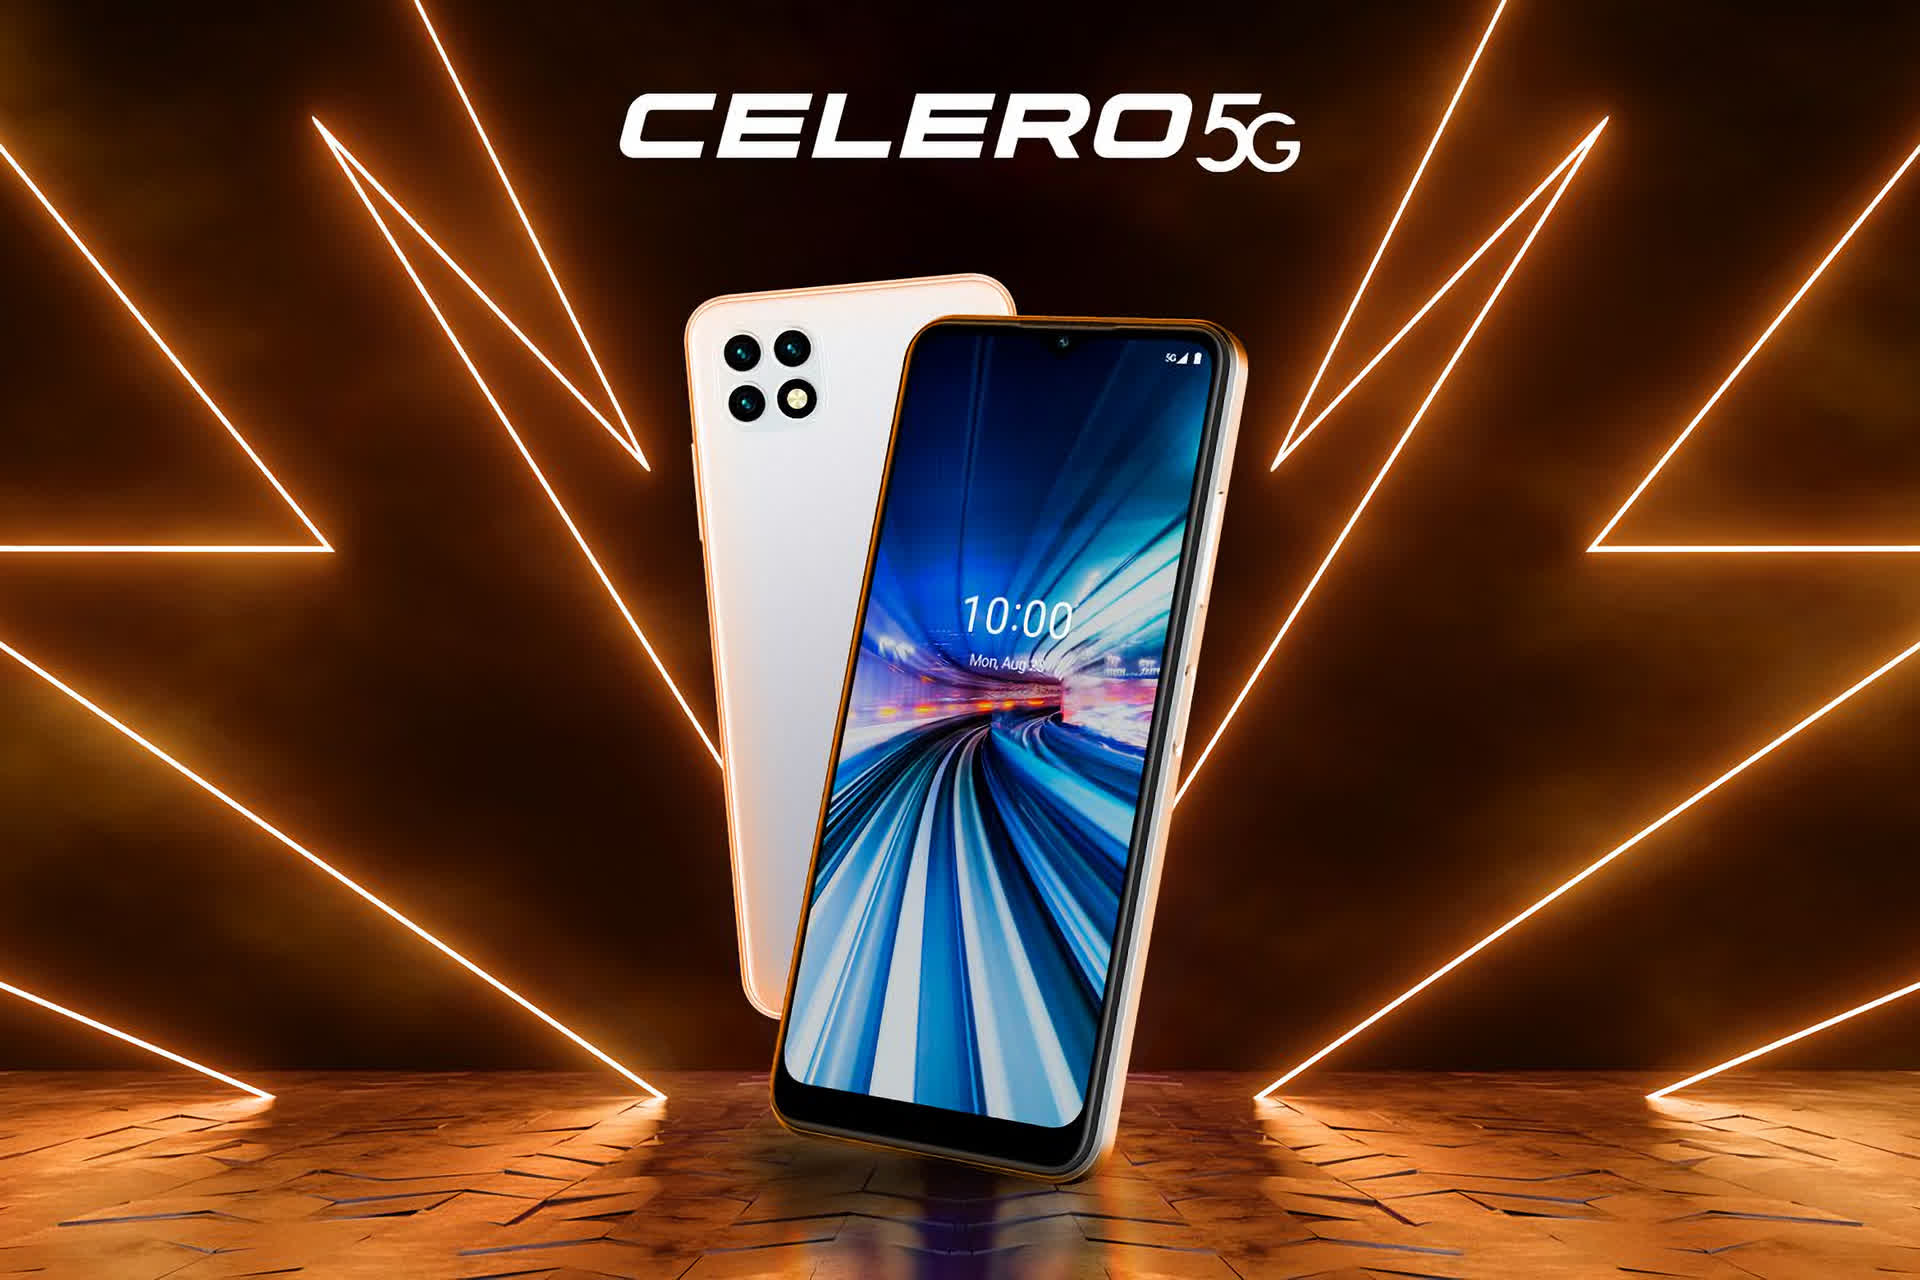 Dish's first smartphone is the mid-range Celero5G for Boost Mobile